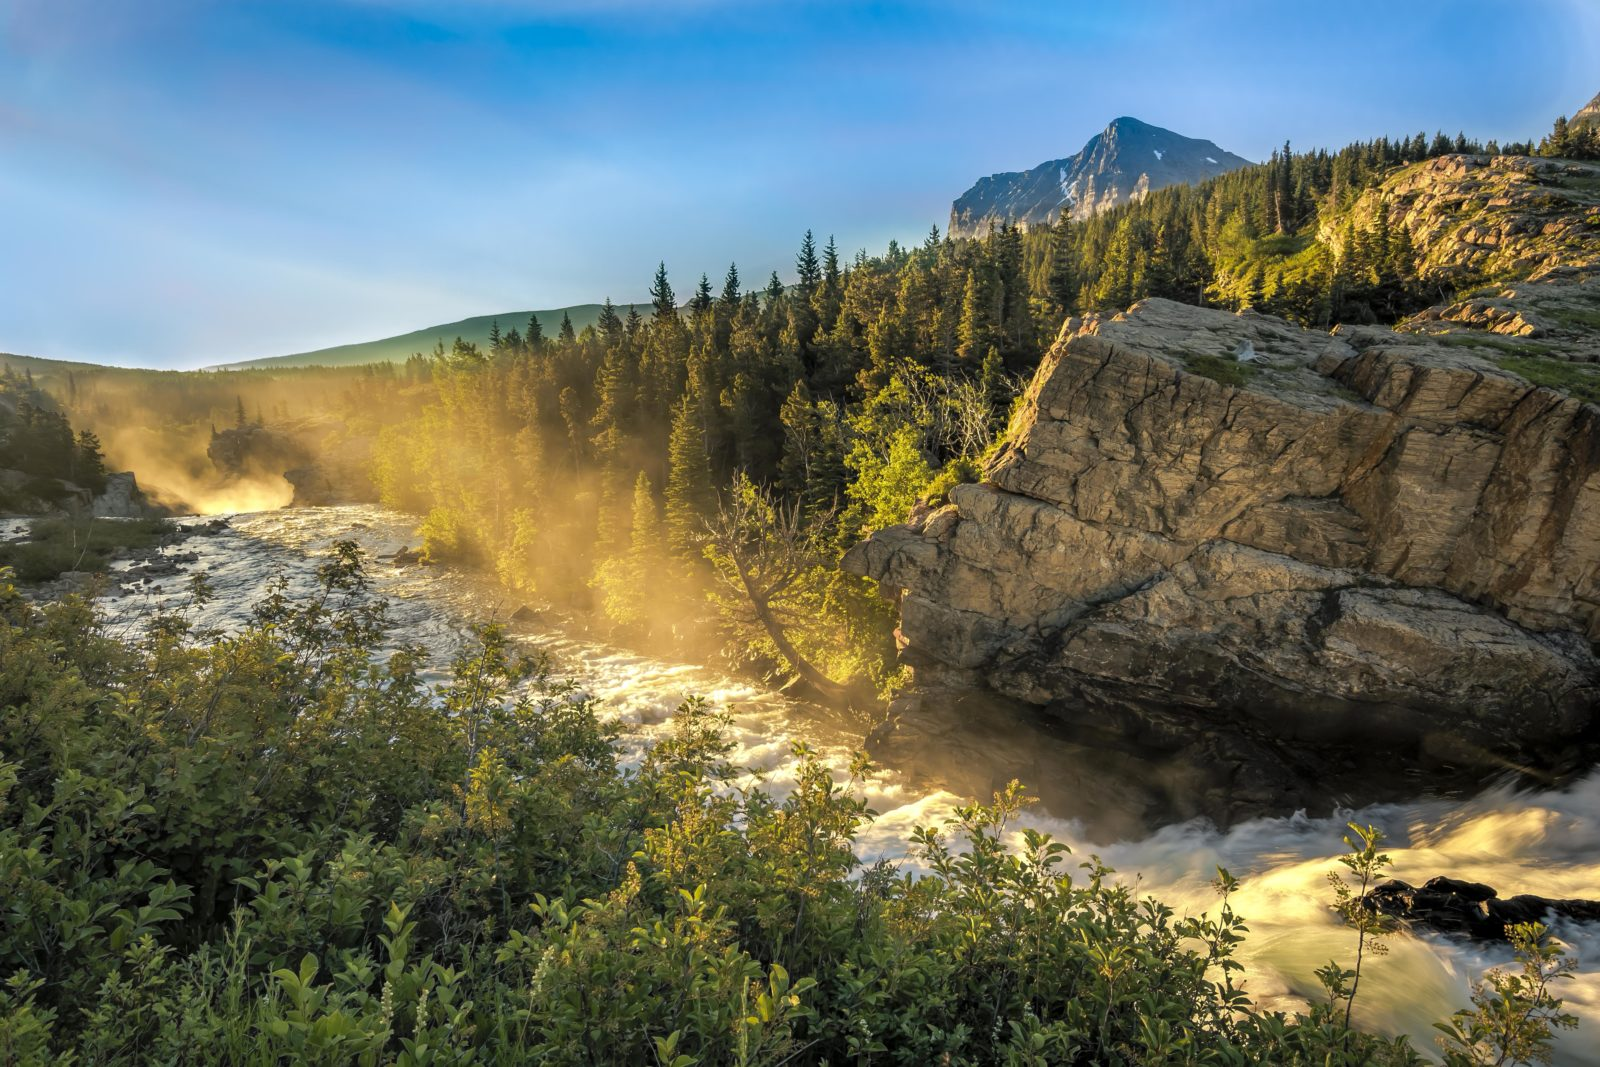 Morning at Swiftcurrent Falls